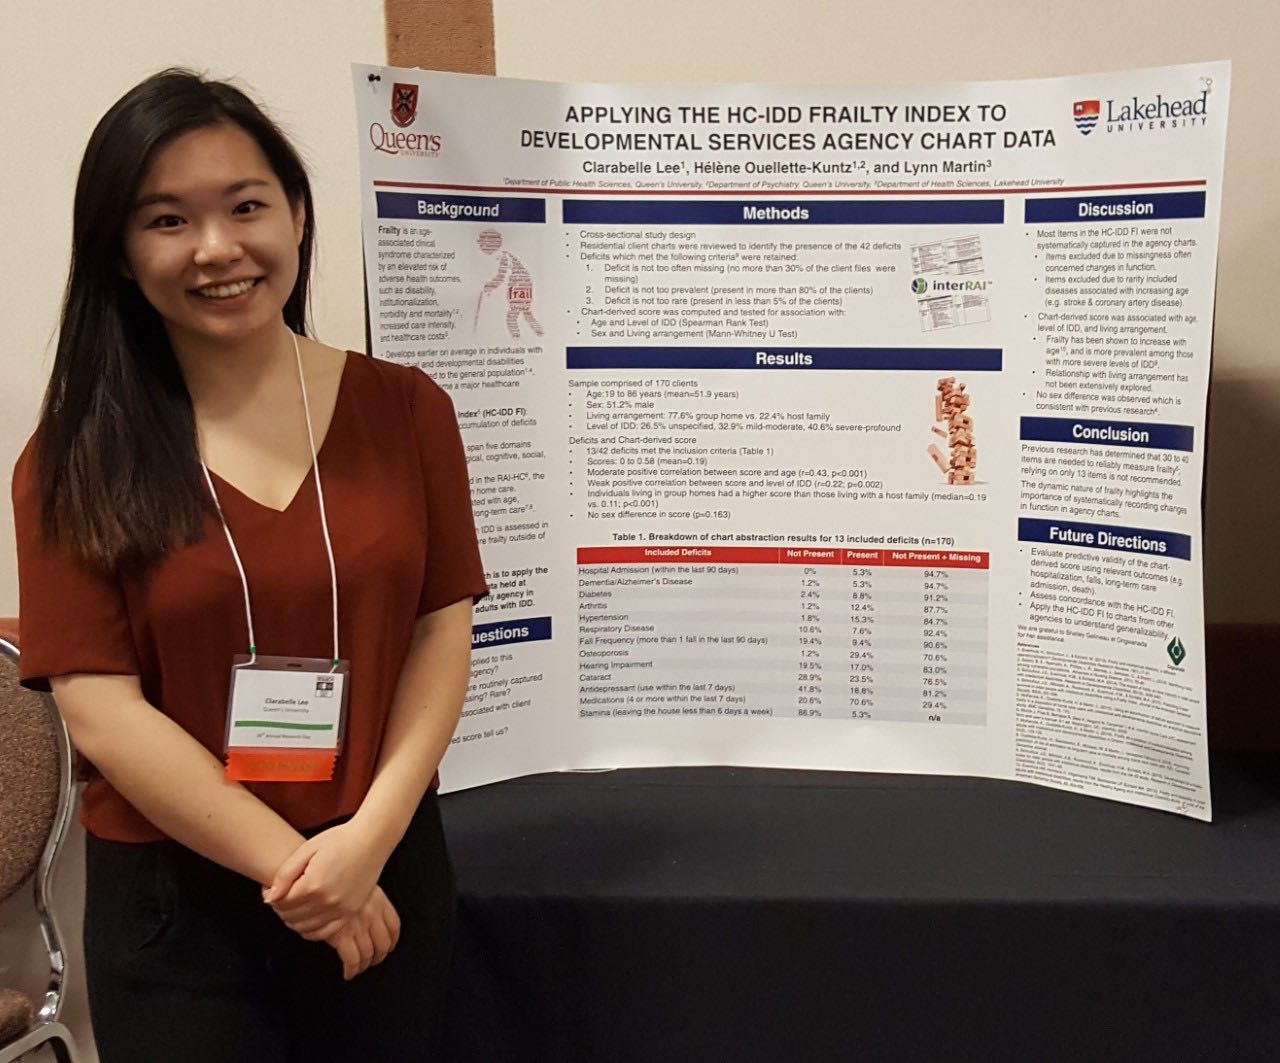 A young woman professional dressed stands smiling next to her poster on the frailty index.